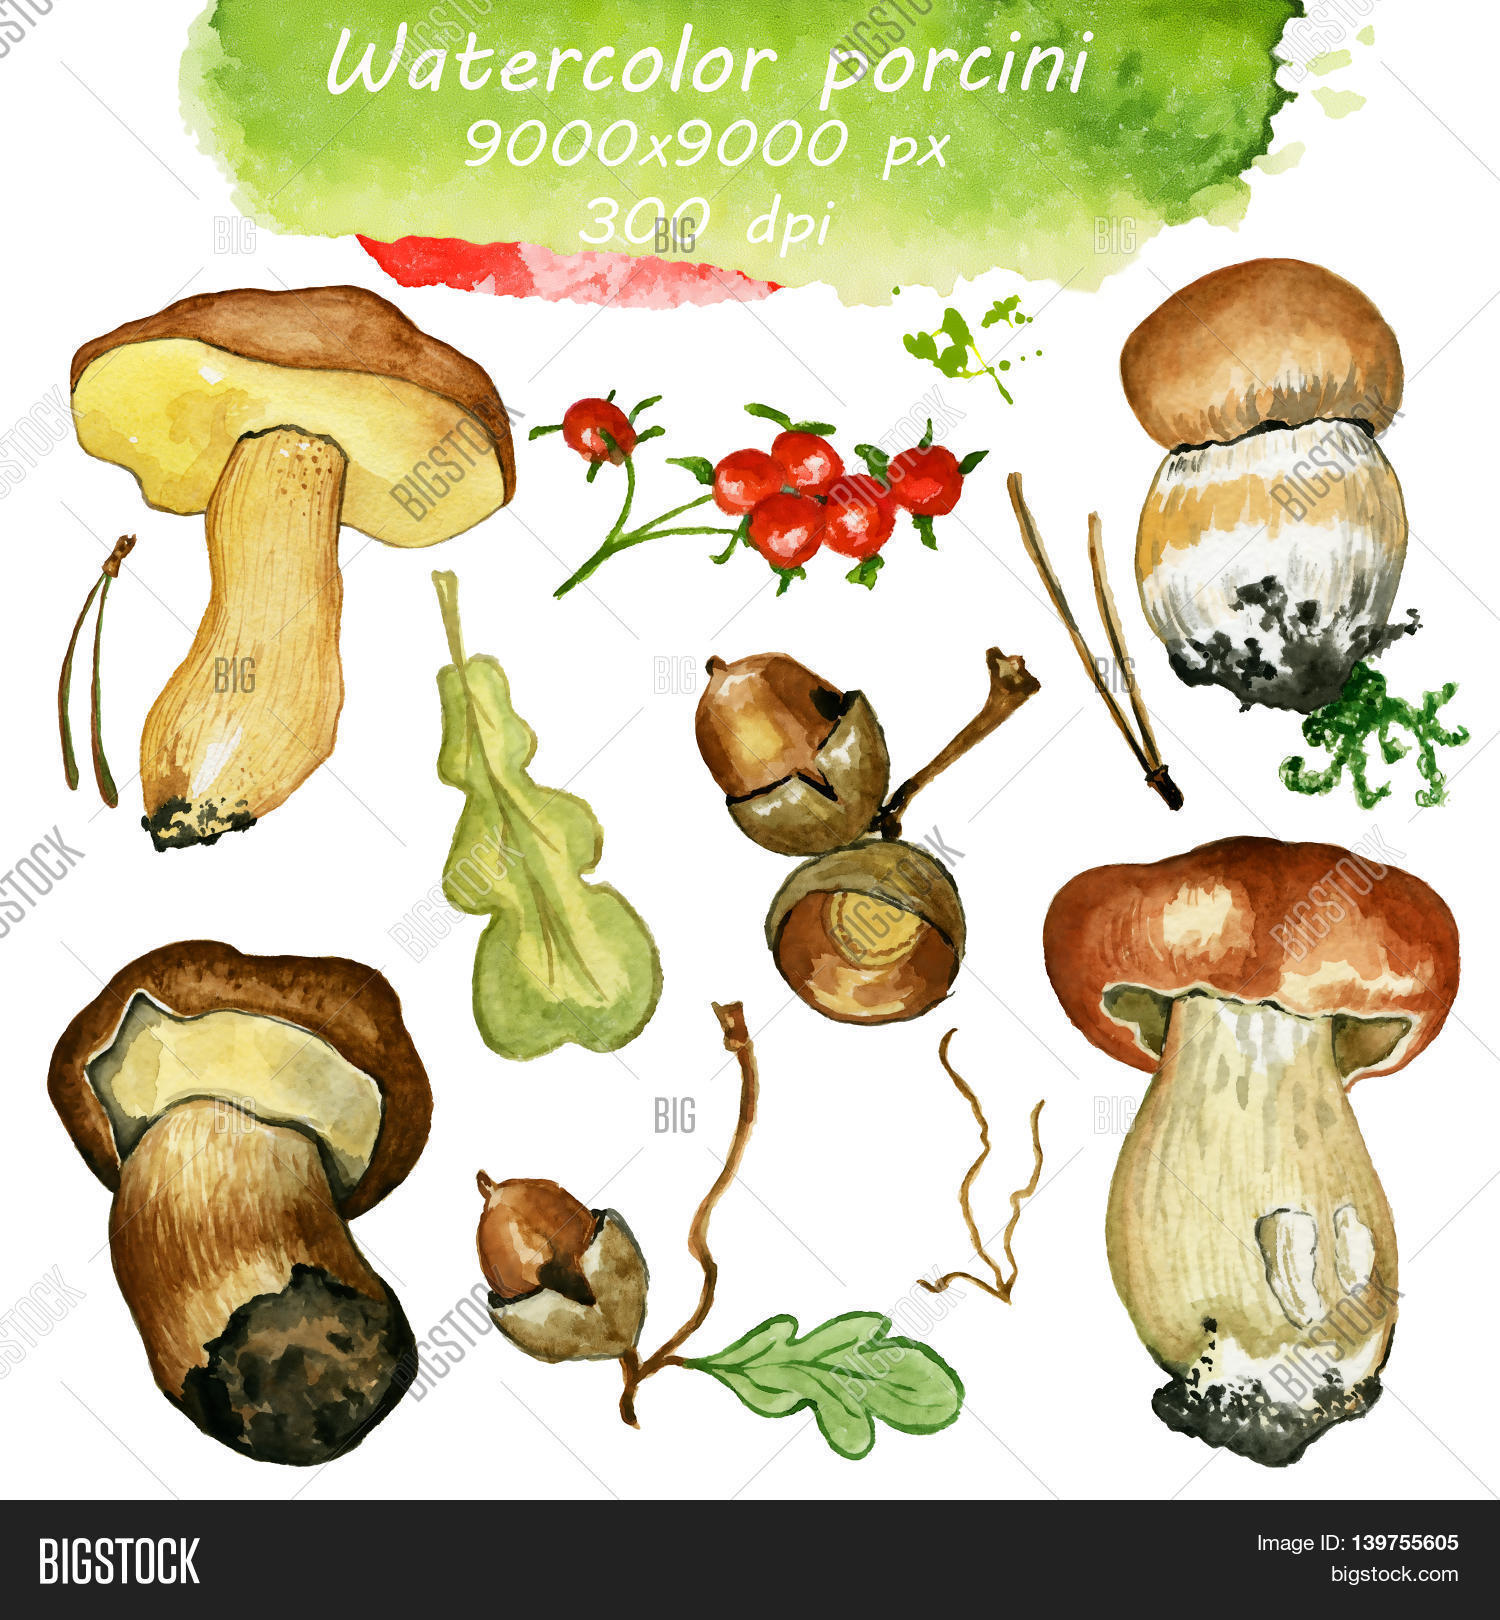 Wild mushrooms. Hand drawn watercolor painting isolated over white.